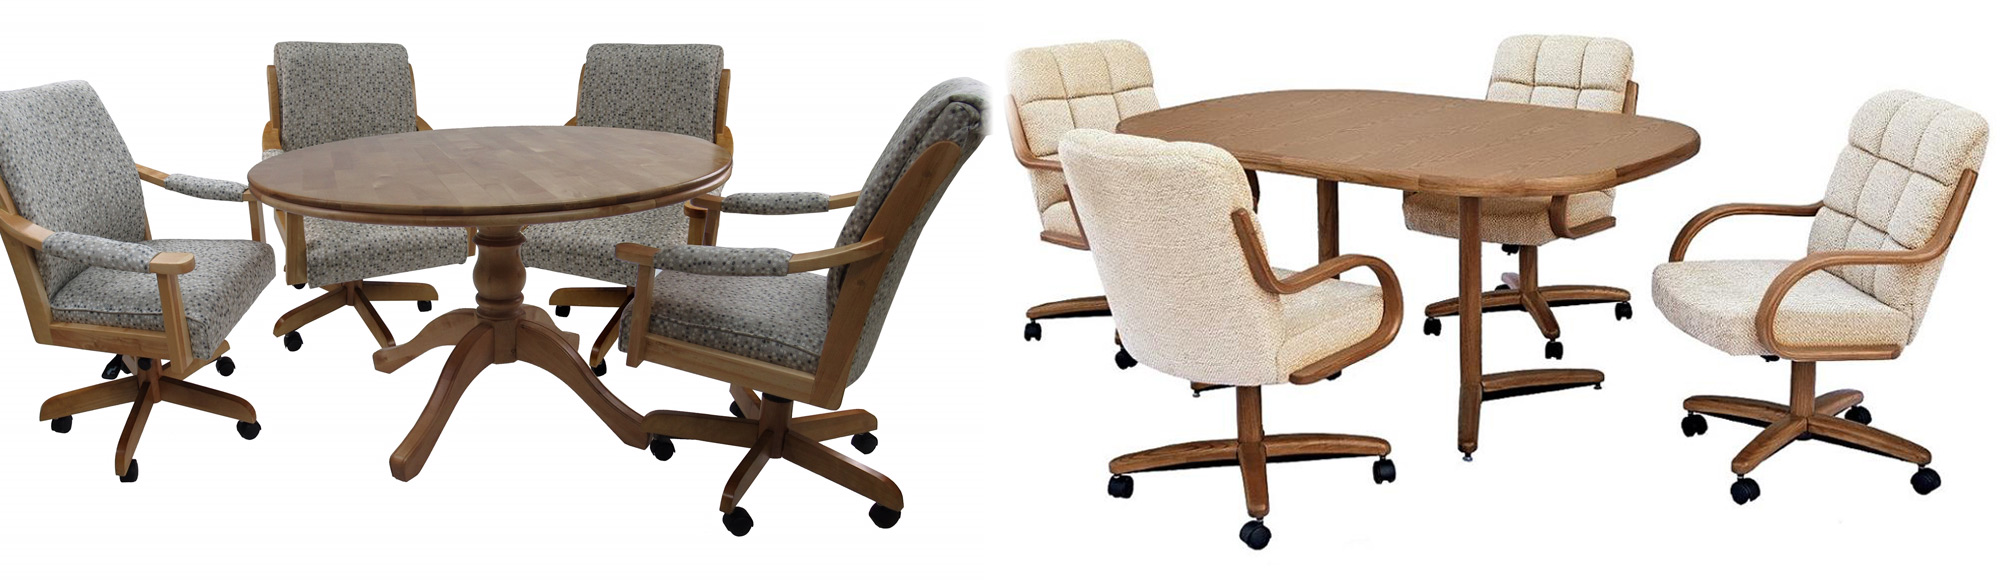 Caster Chairs   Dinettes Unlimited